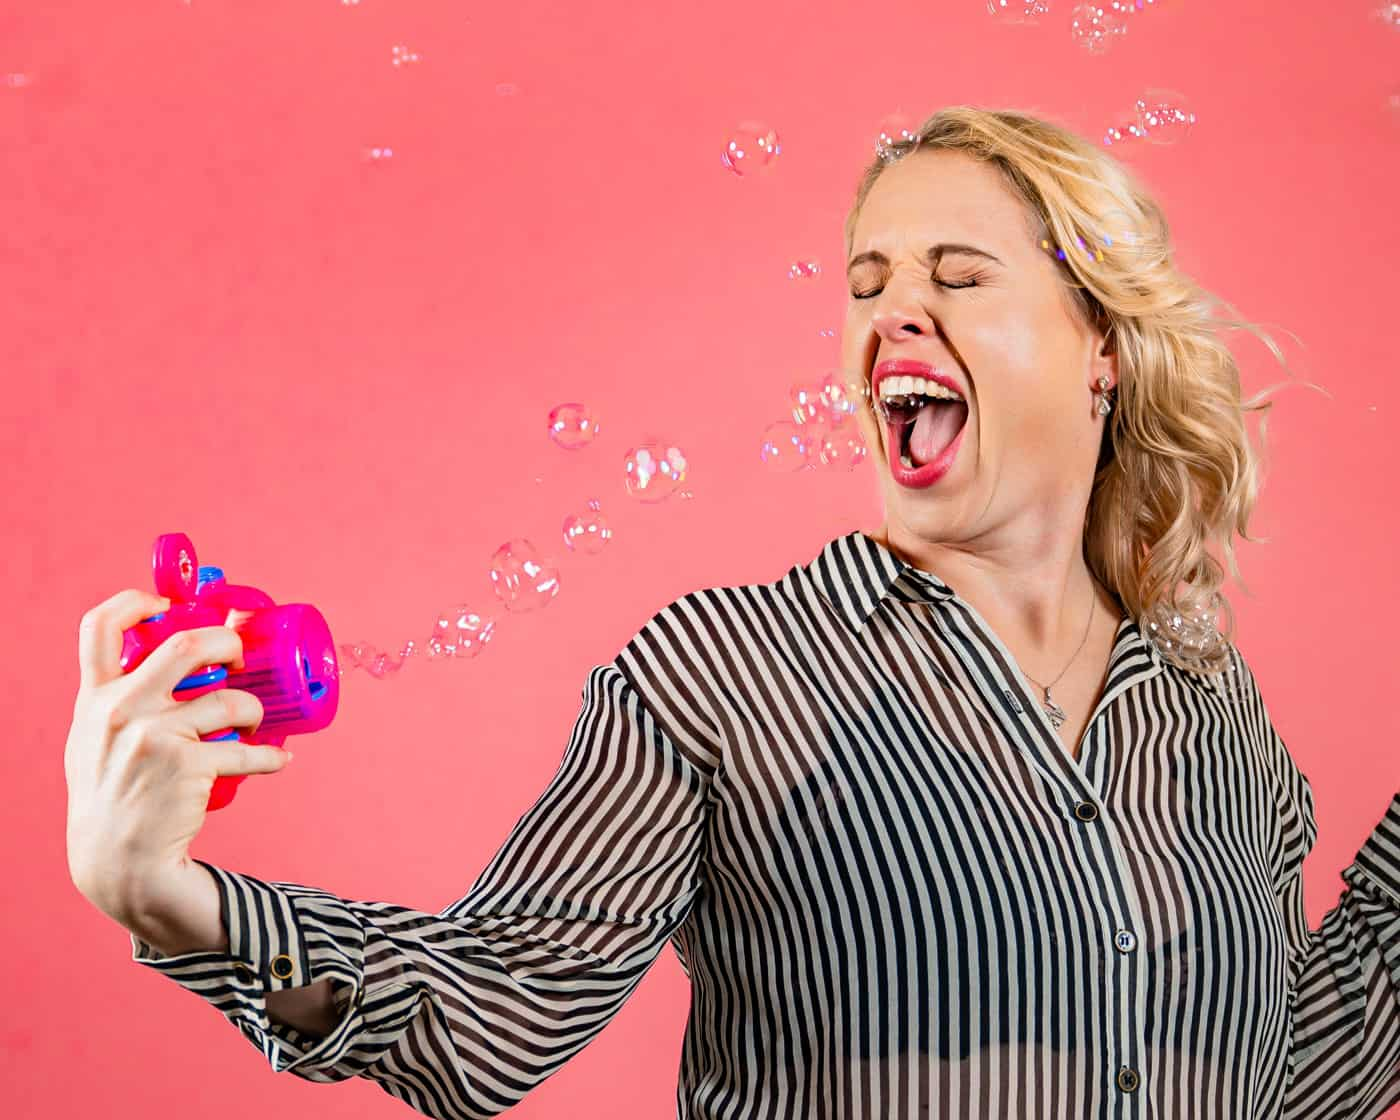 woman shoots bubble machine in her mouth